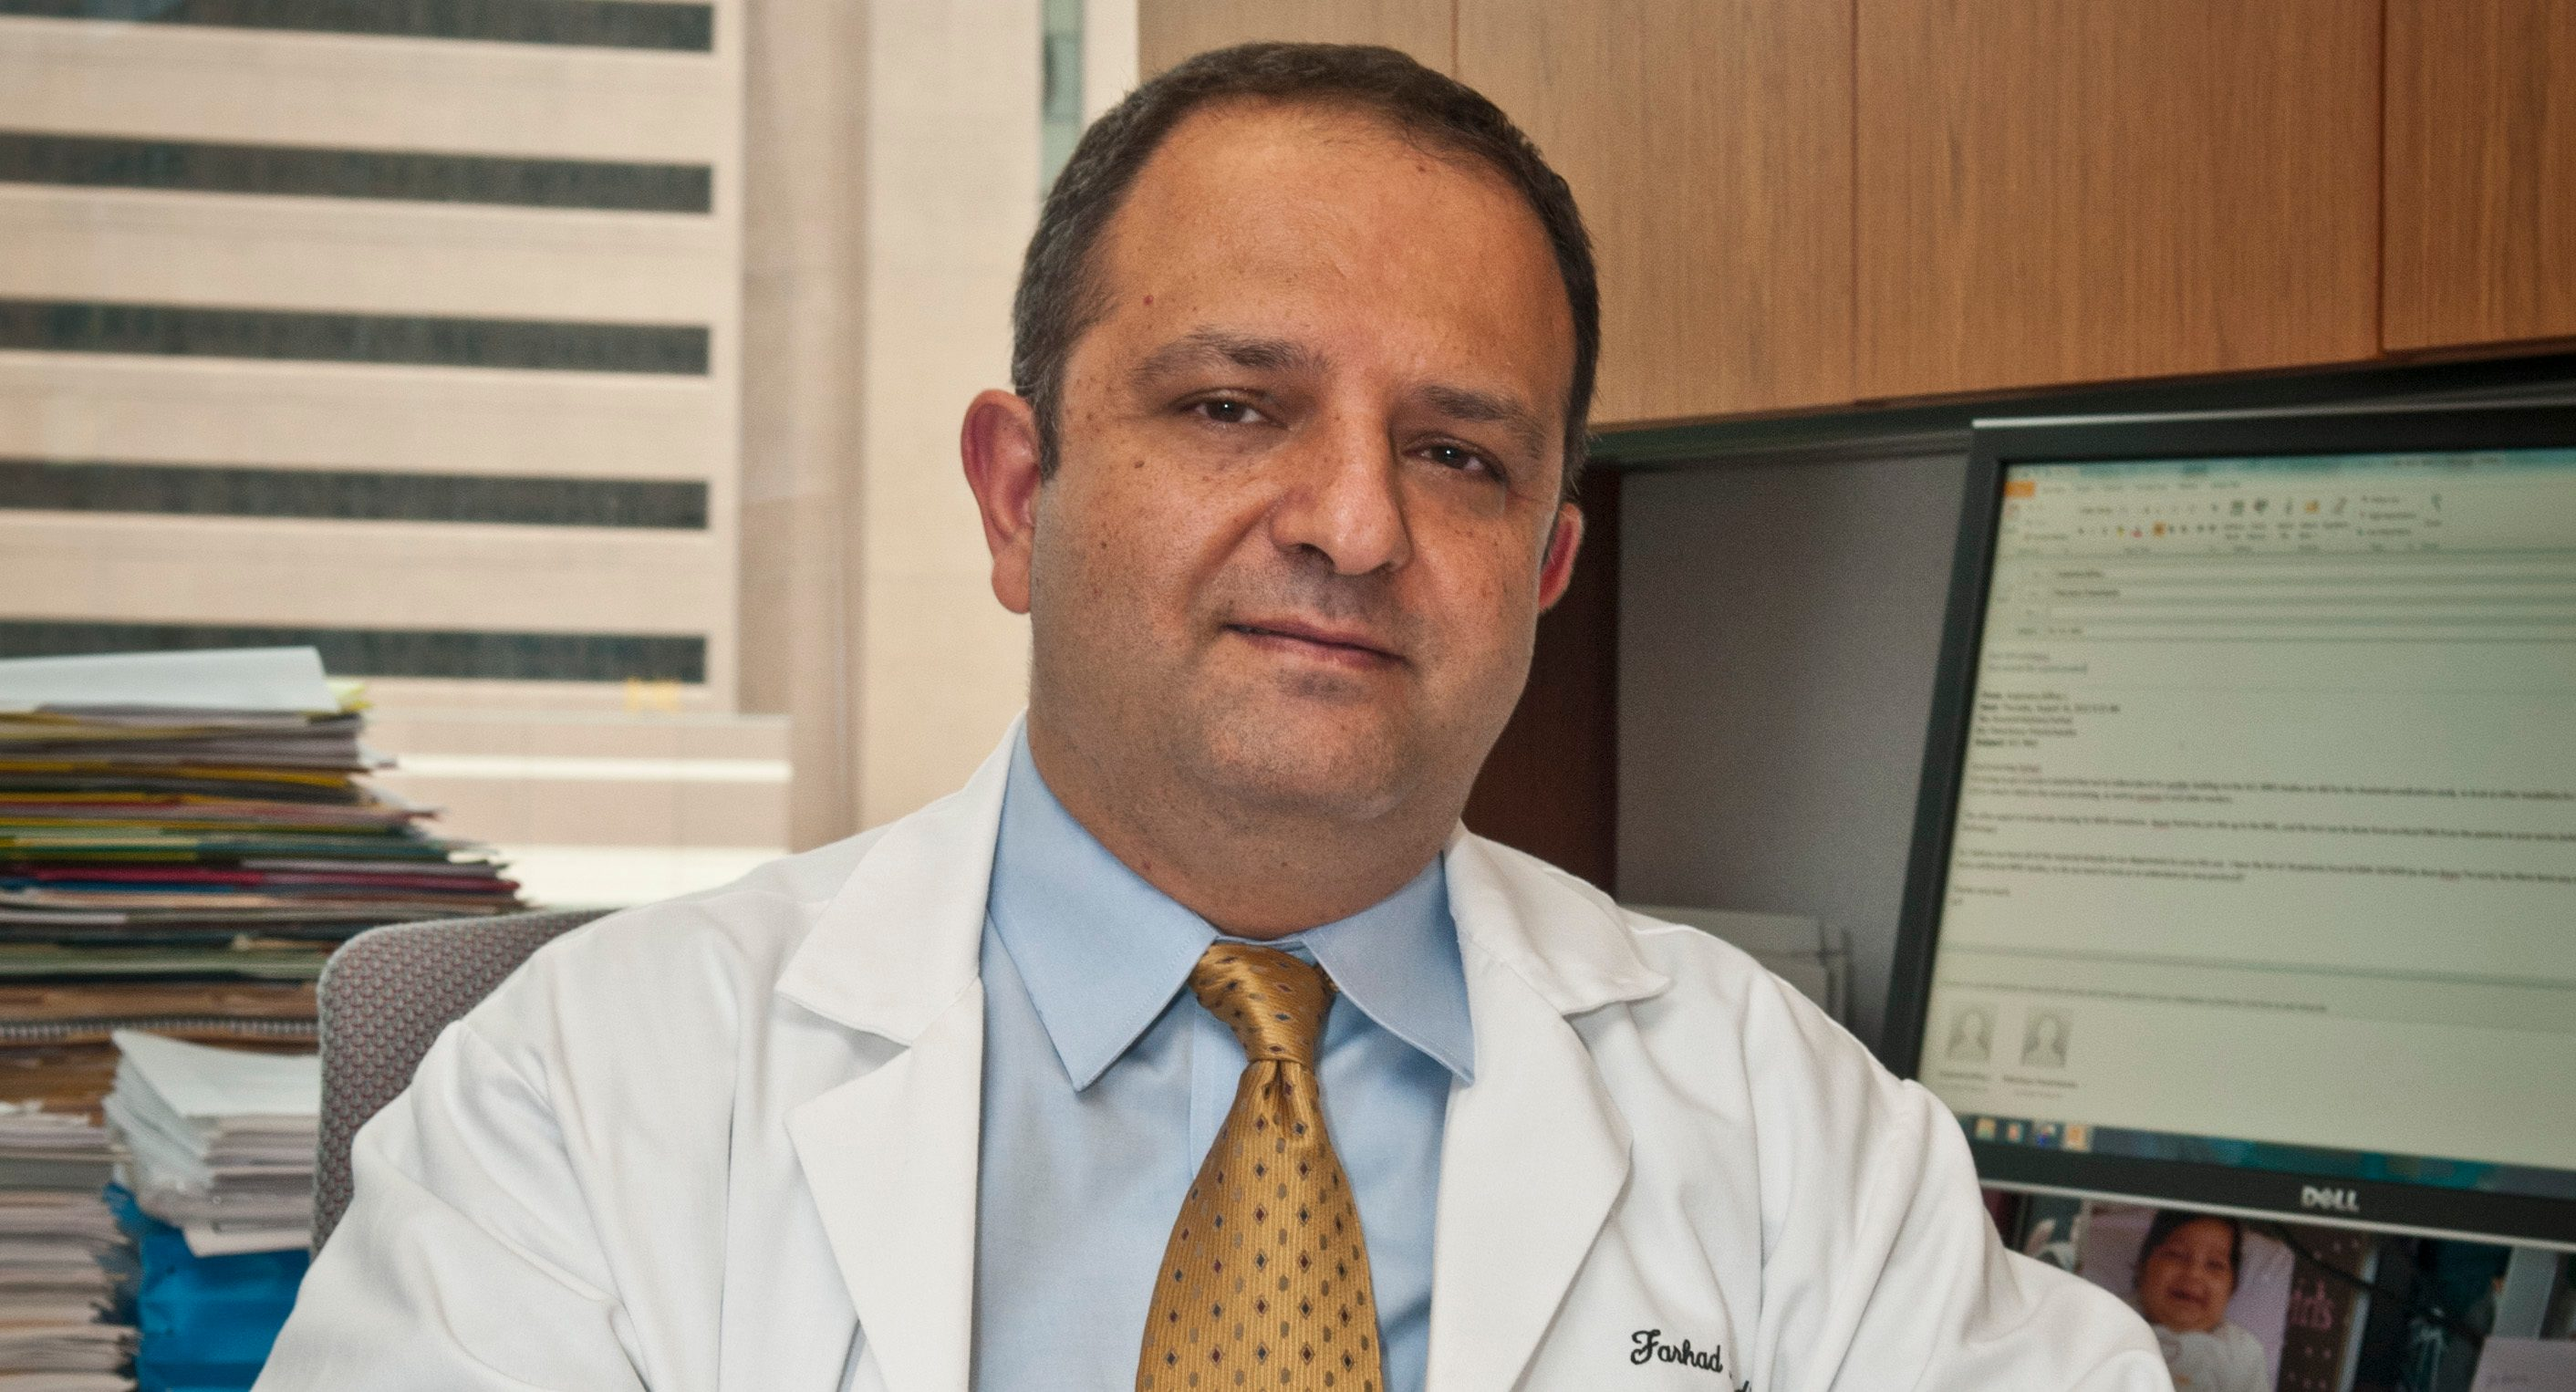 Farhad Ravandi, M.D., led the clinical trial that paired the immune checkpoint inhibitor nivolumab with a chemotherapy combination for acute myeloid leukemia.